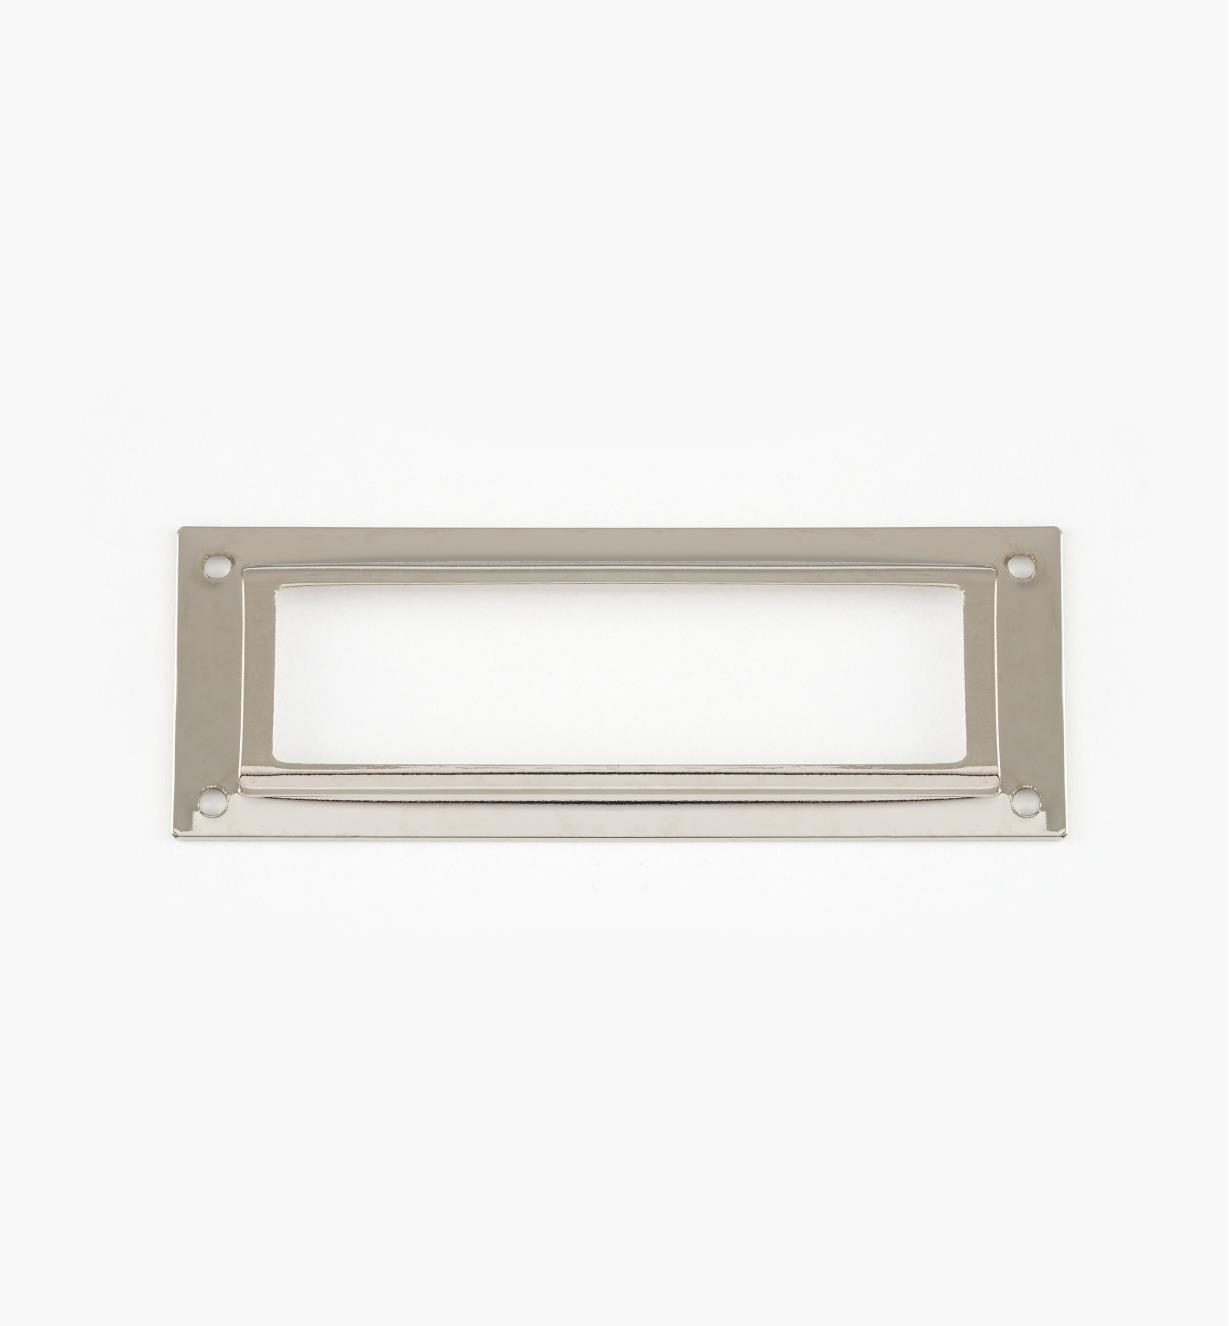 01A5791 - Chrome Plate Label Holder